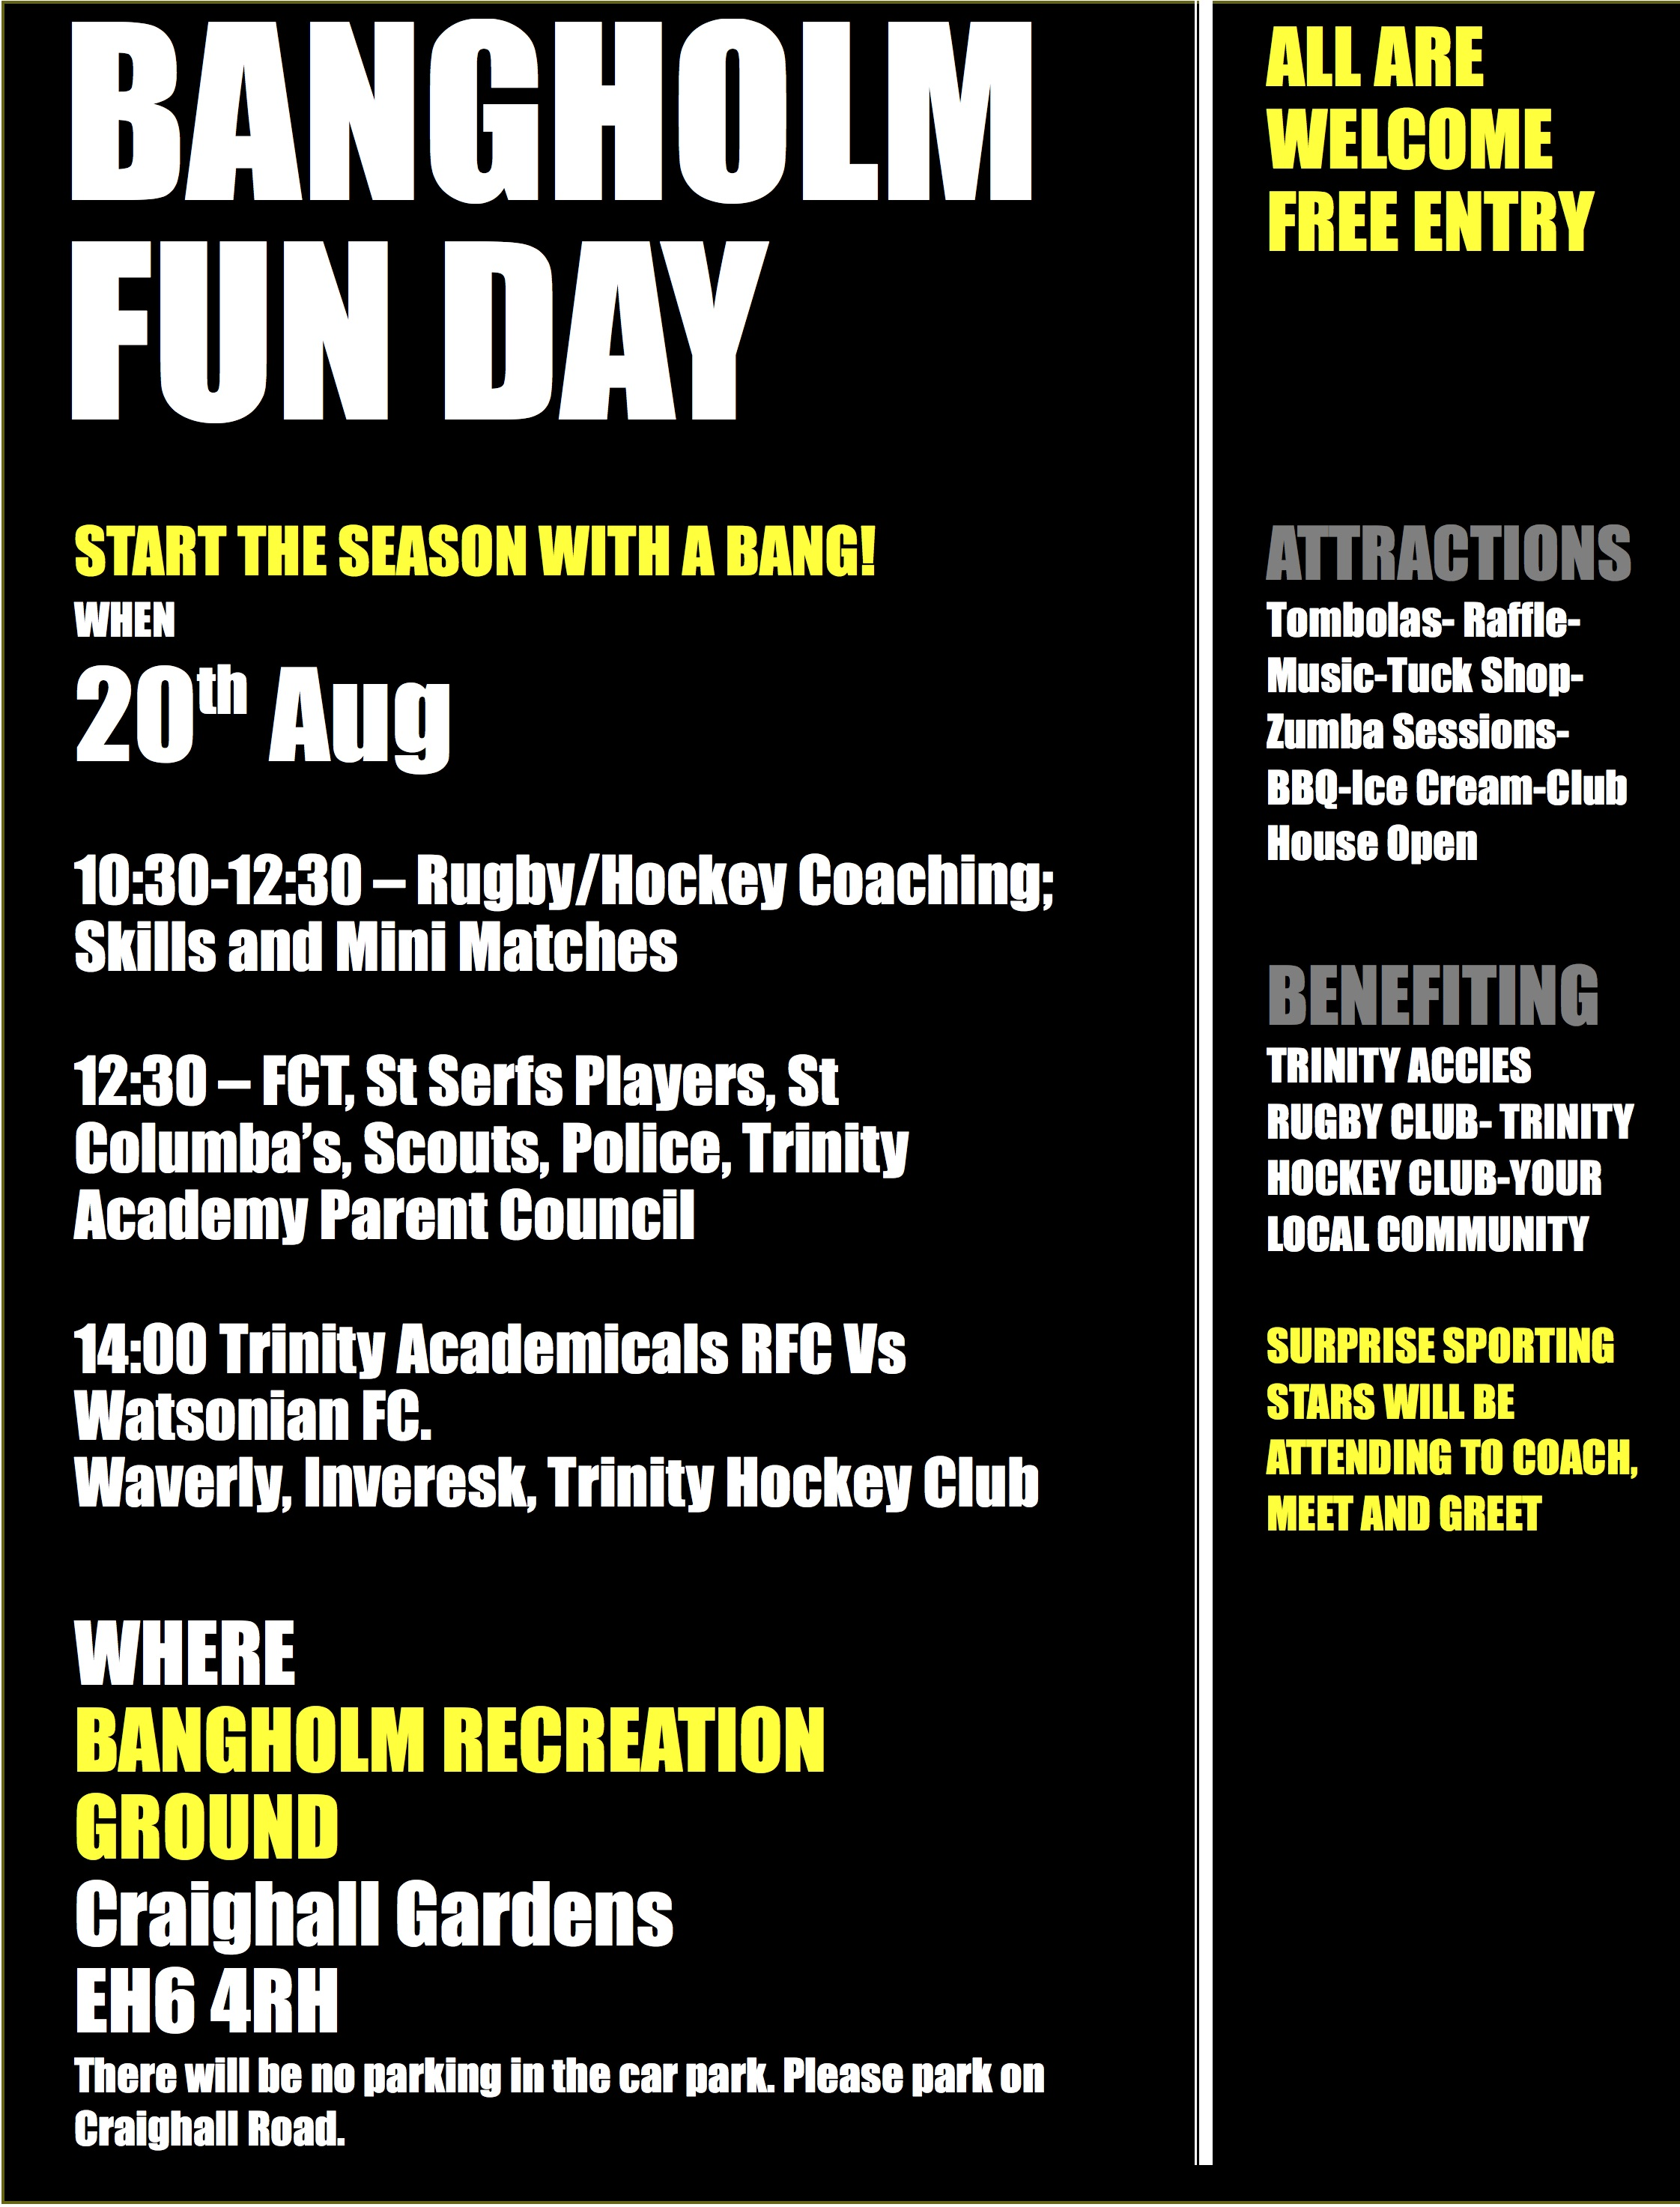 Access fun day poster